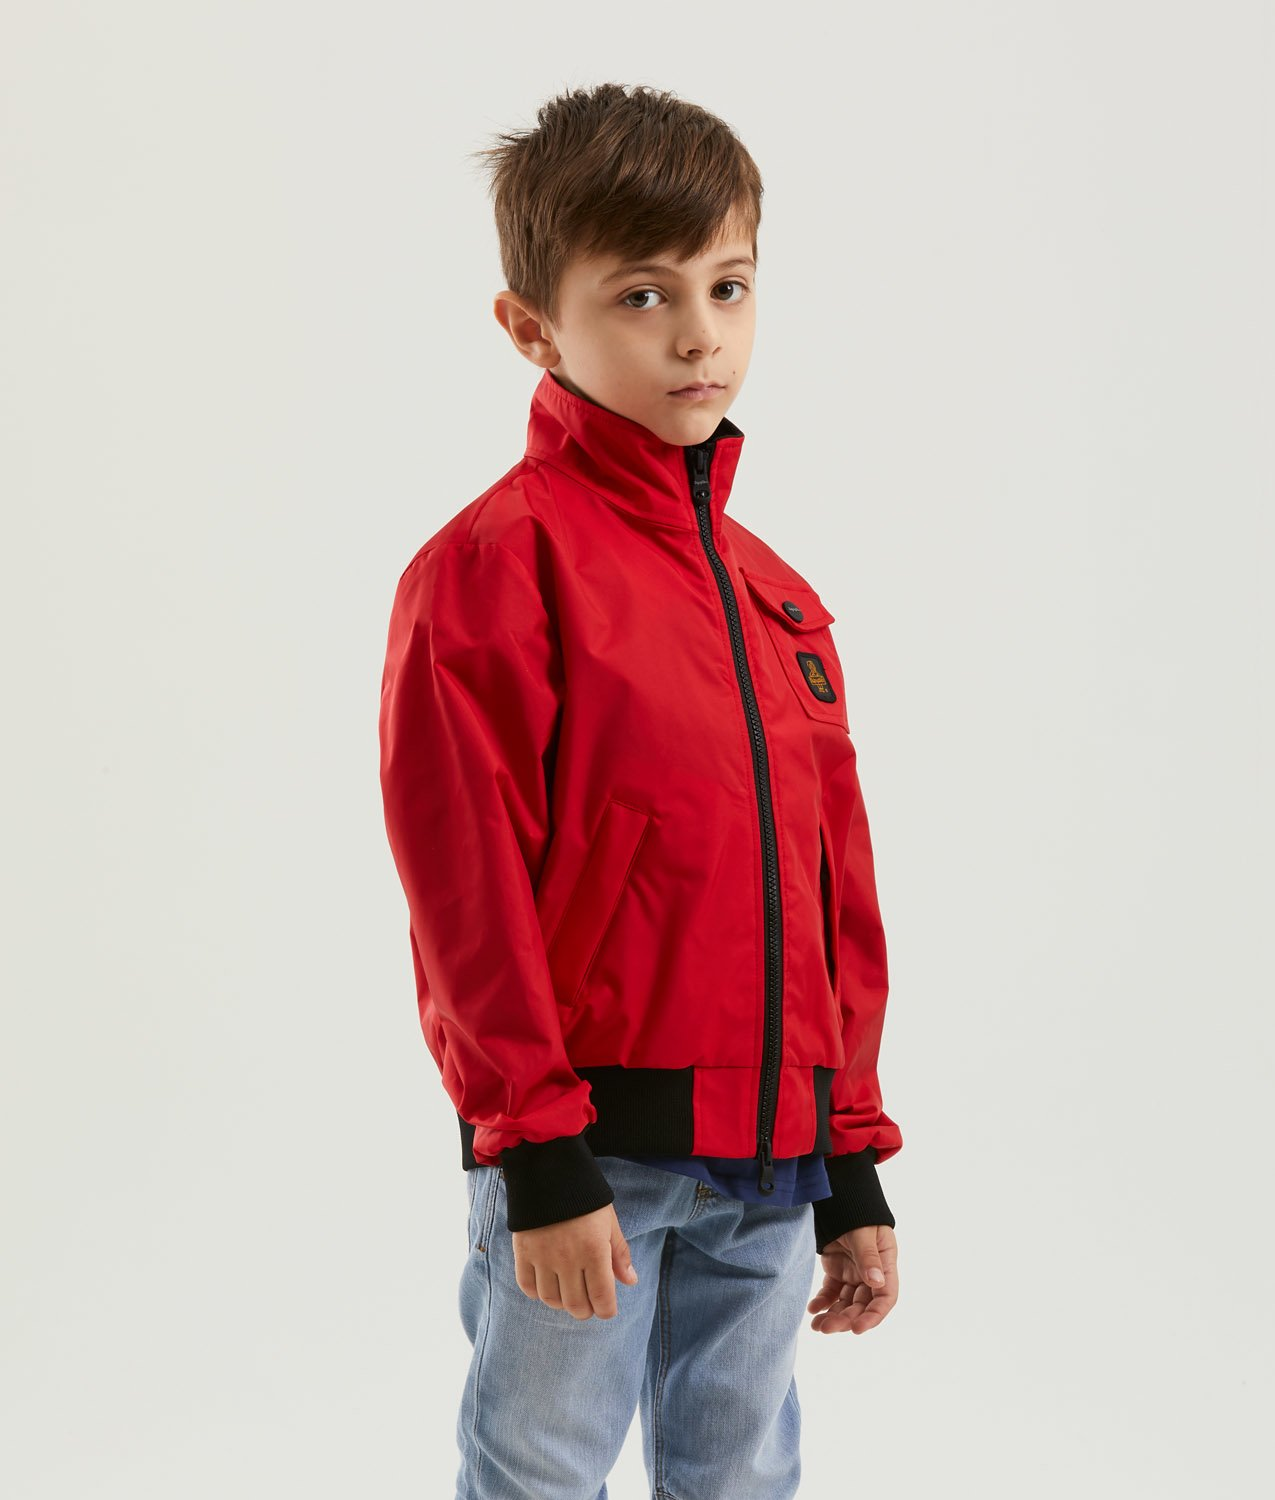 CAPTAIN JR JACKET